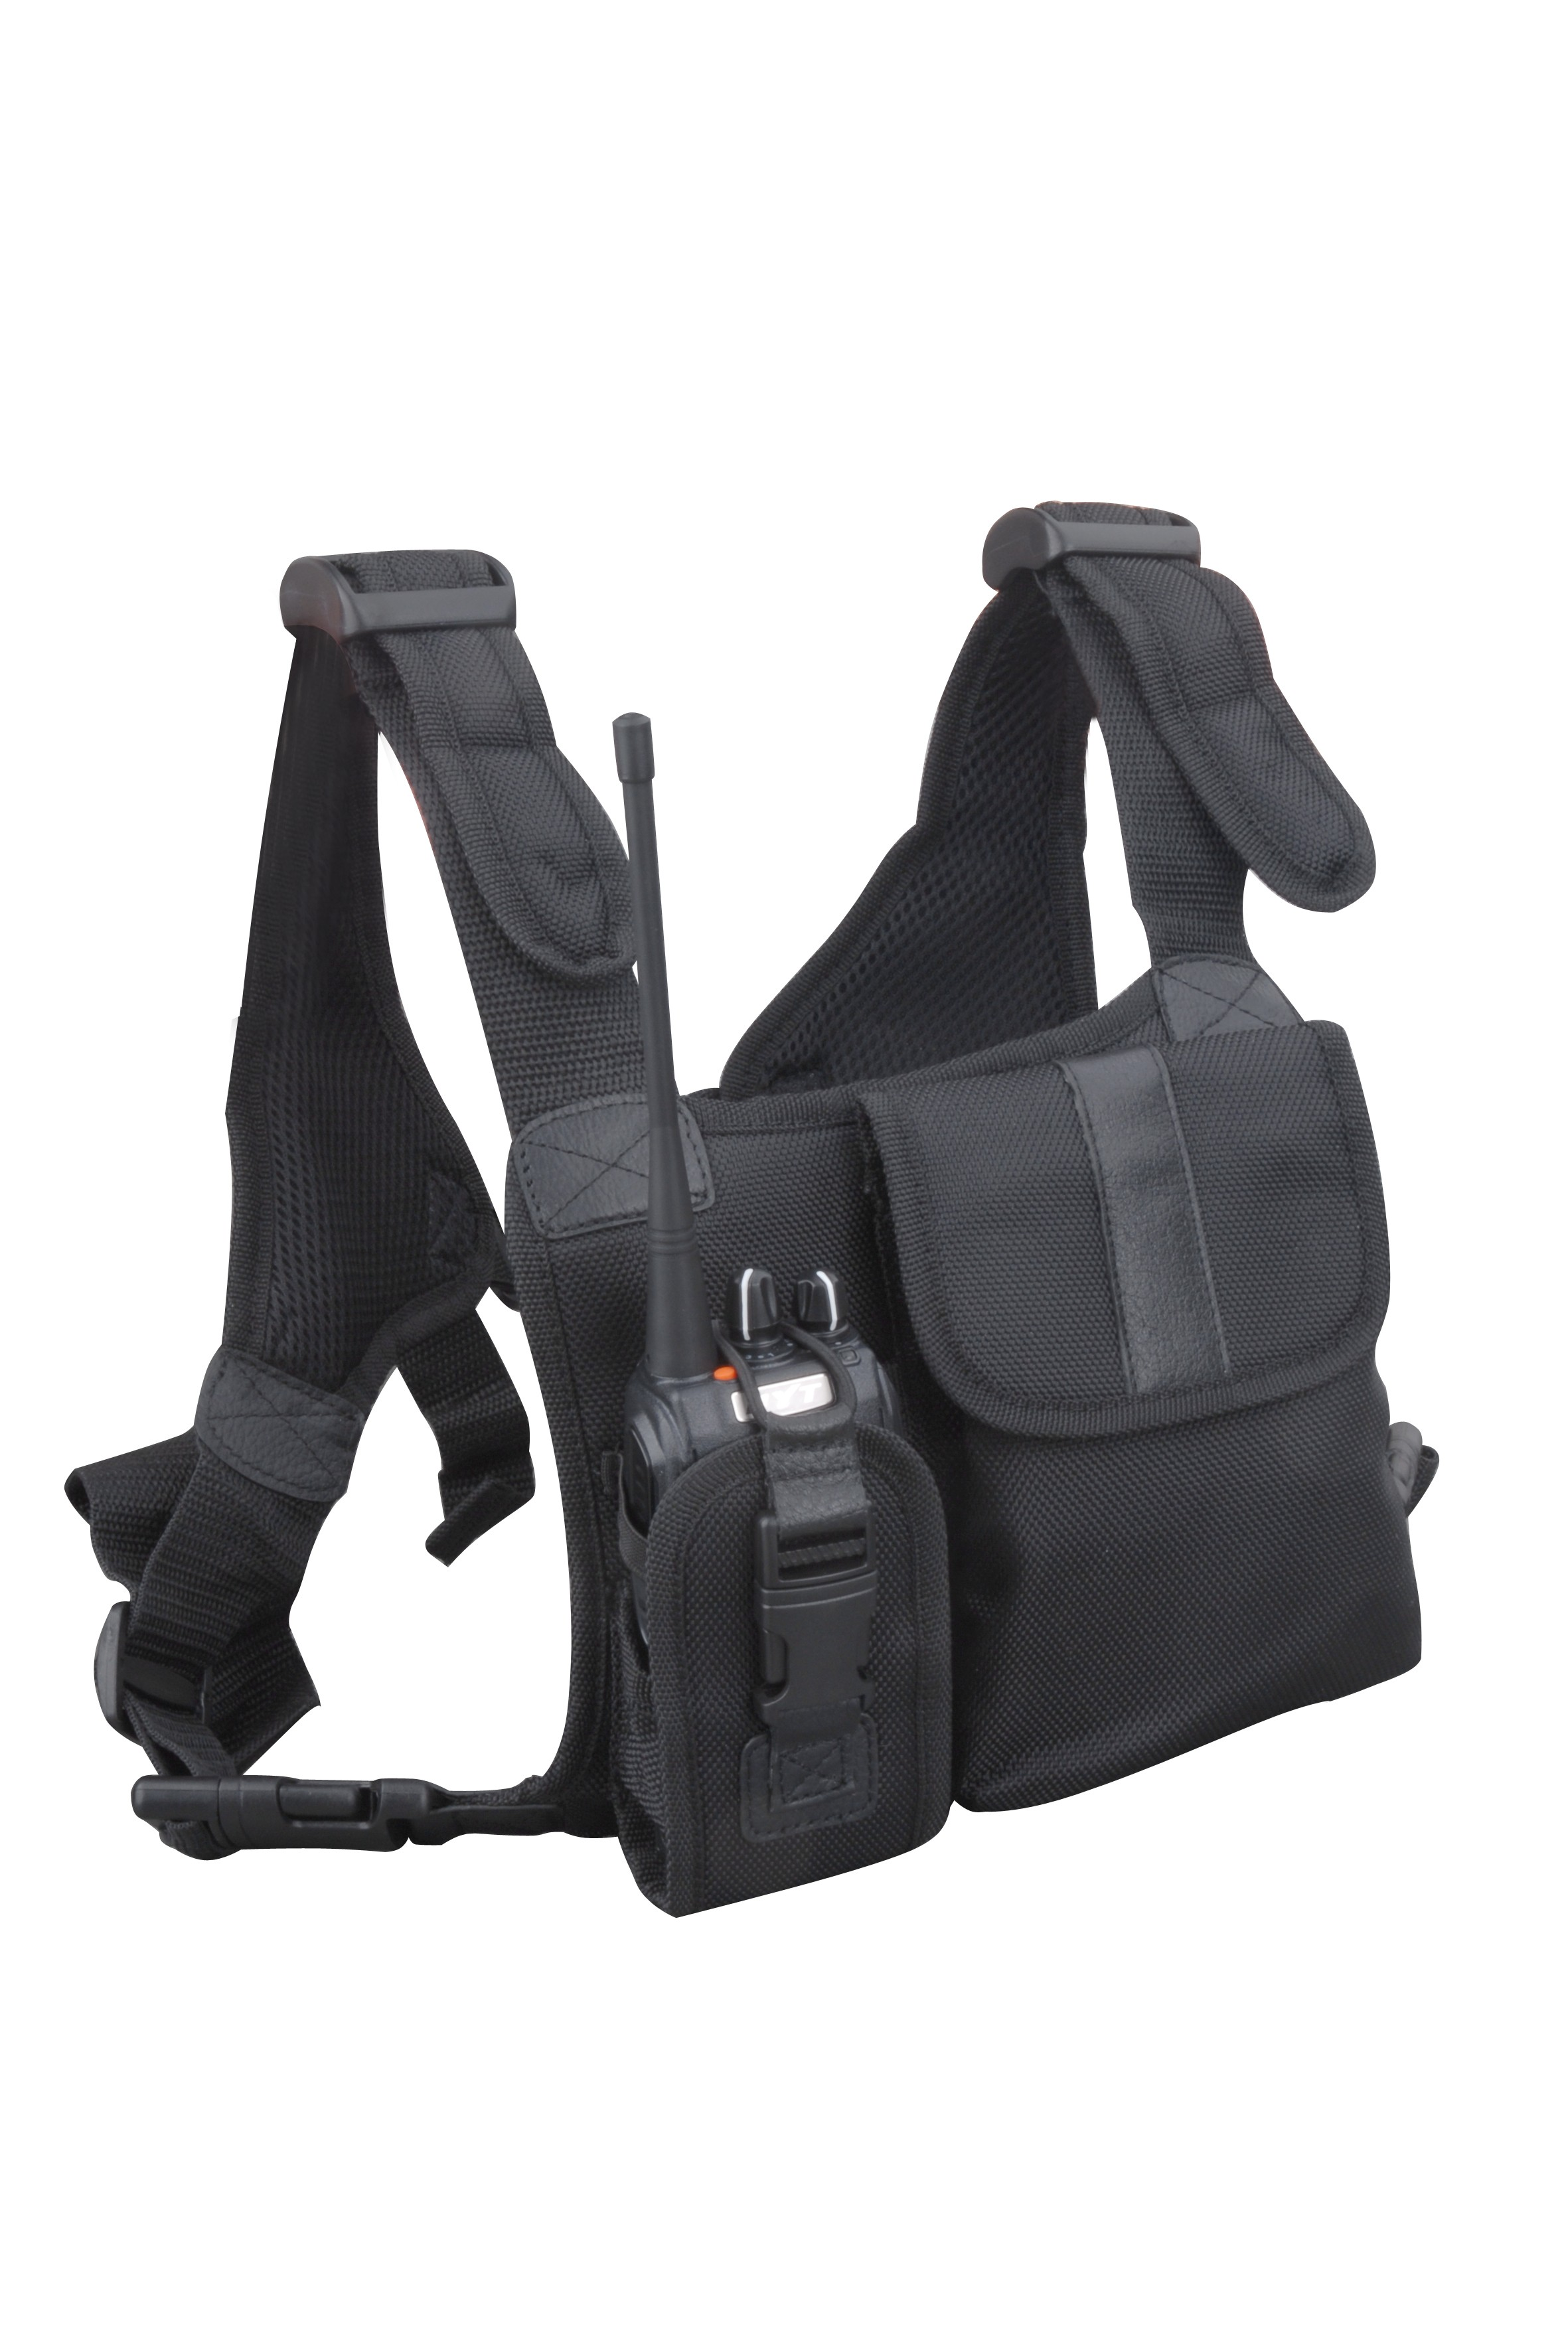 Hytera - Universal Chest Pack